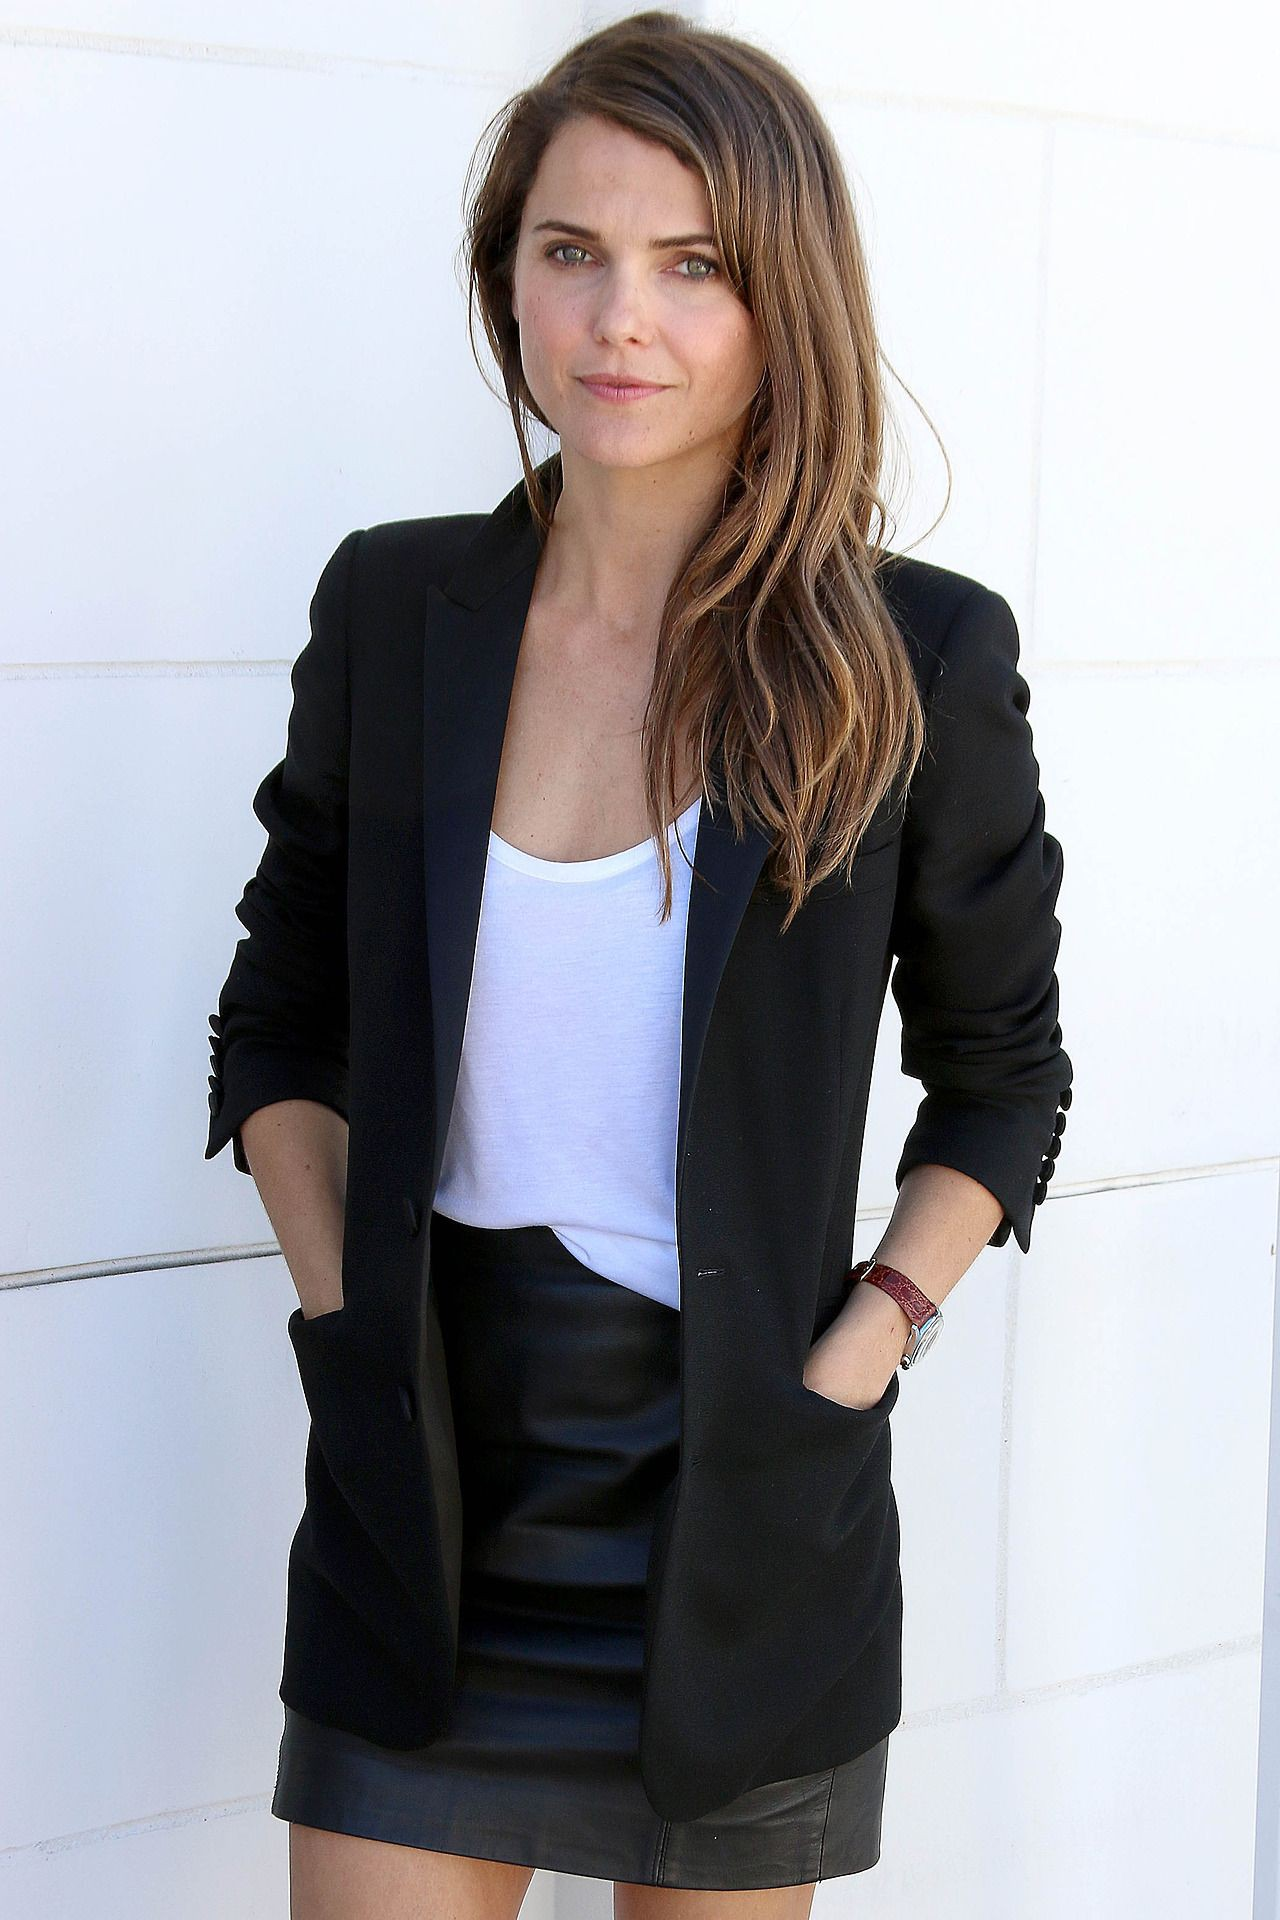 White and black classy outfit with trousers, jacket, blazer